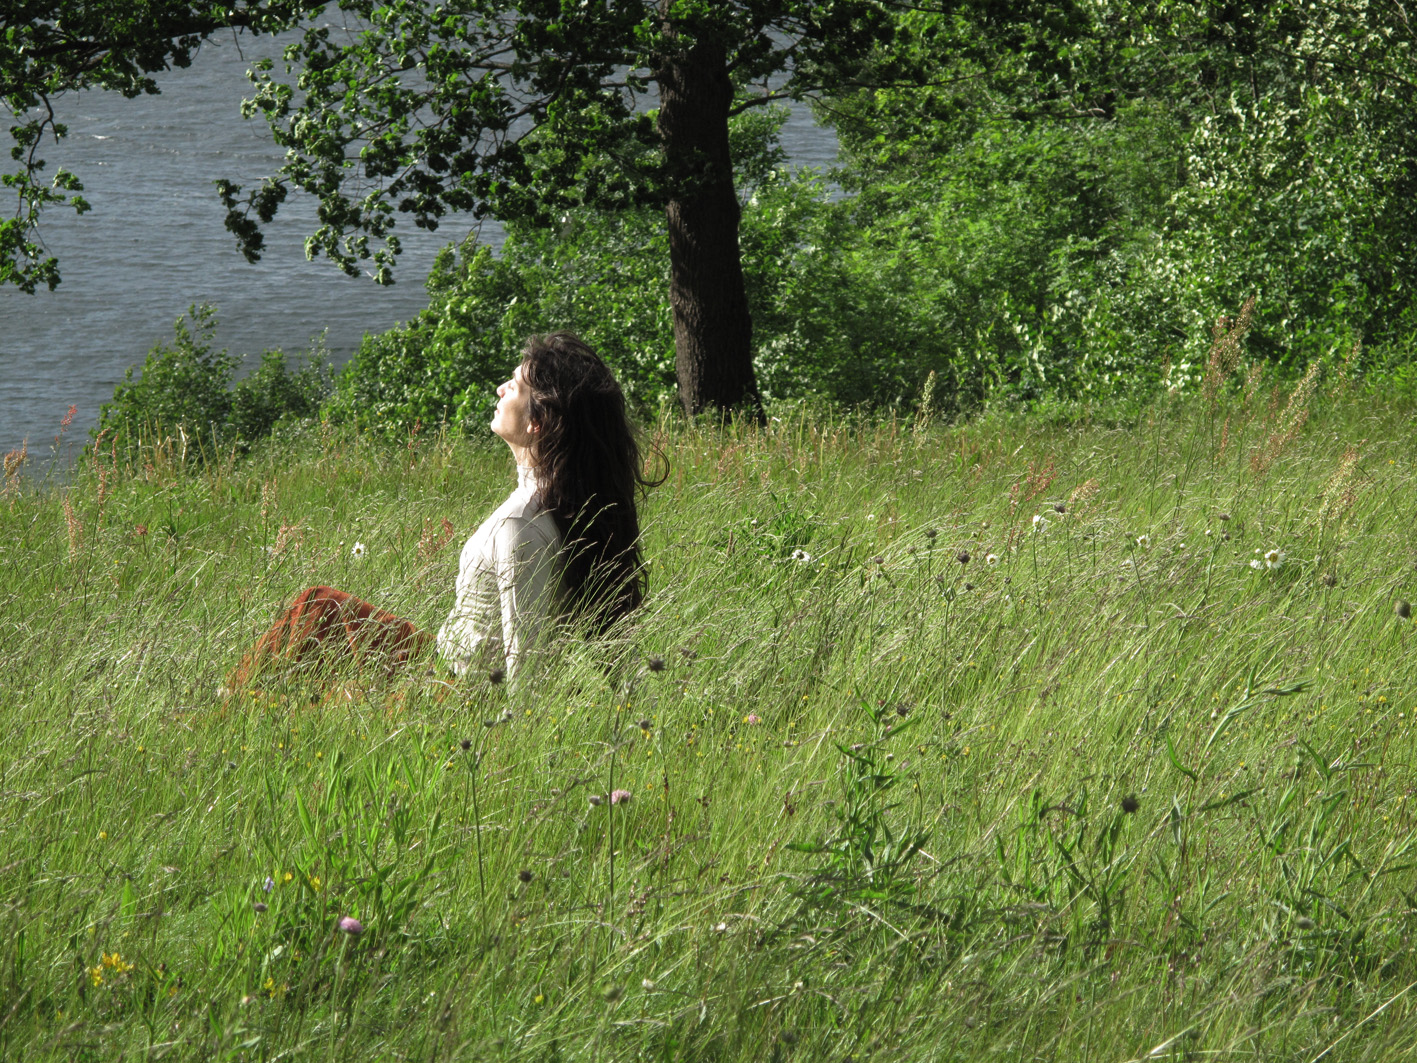 Section of image: Fernanda Branco, performance during the Festival of Silence 2009 in Esviken.